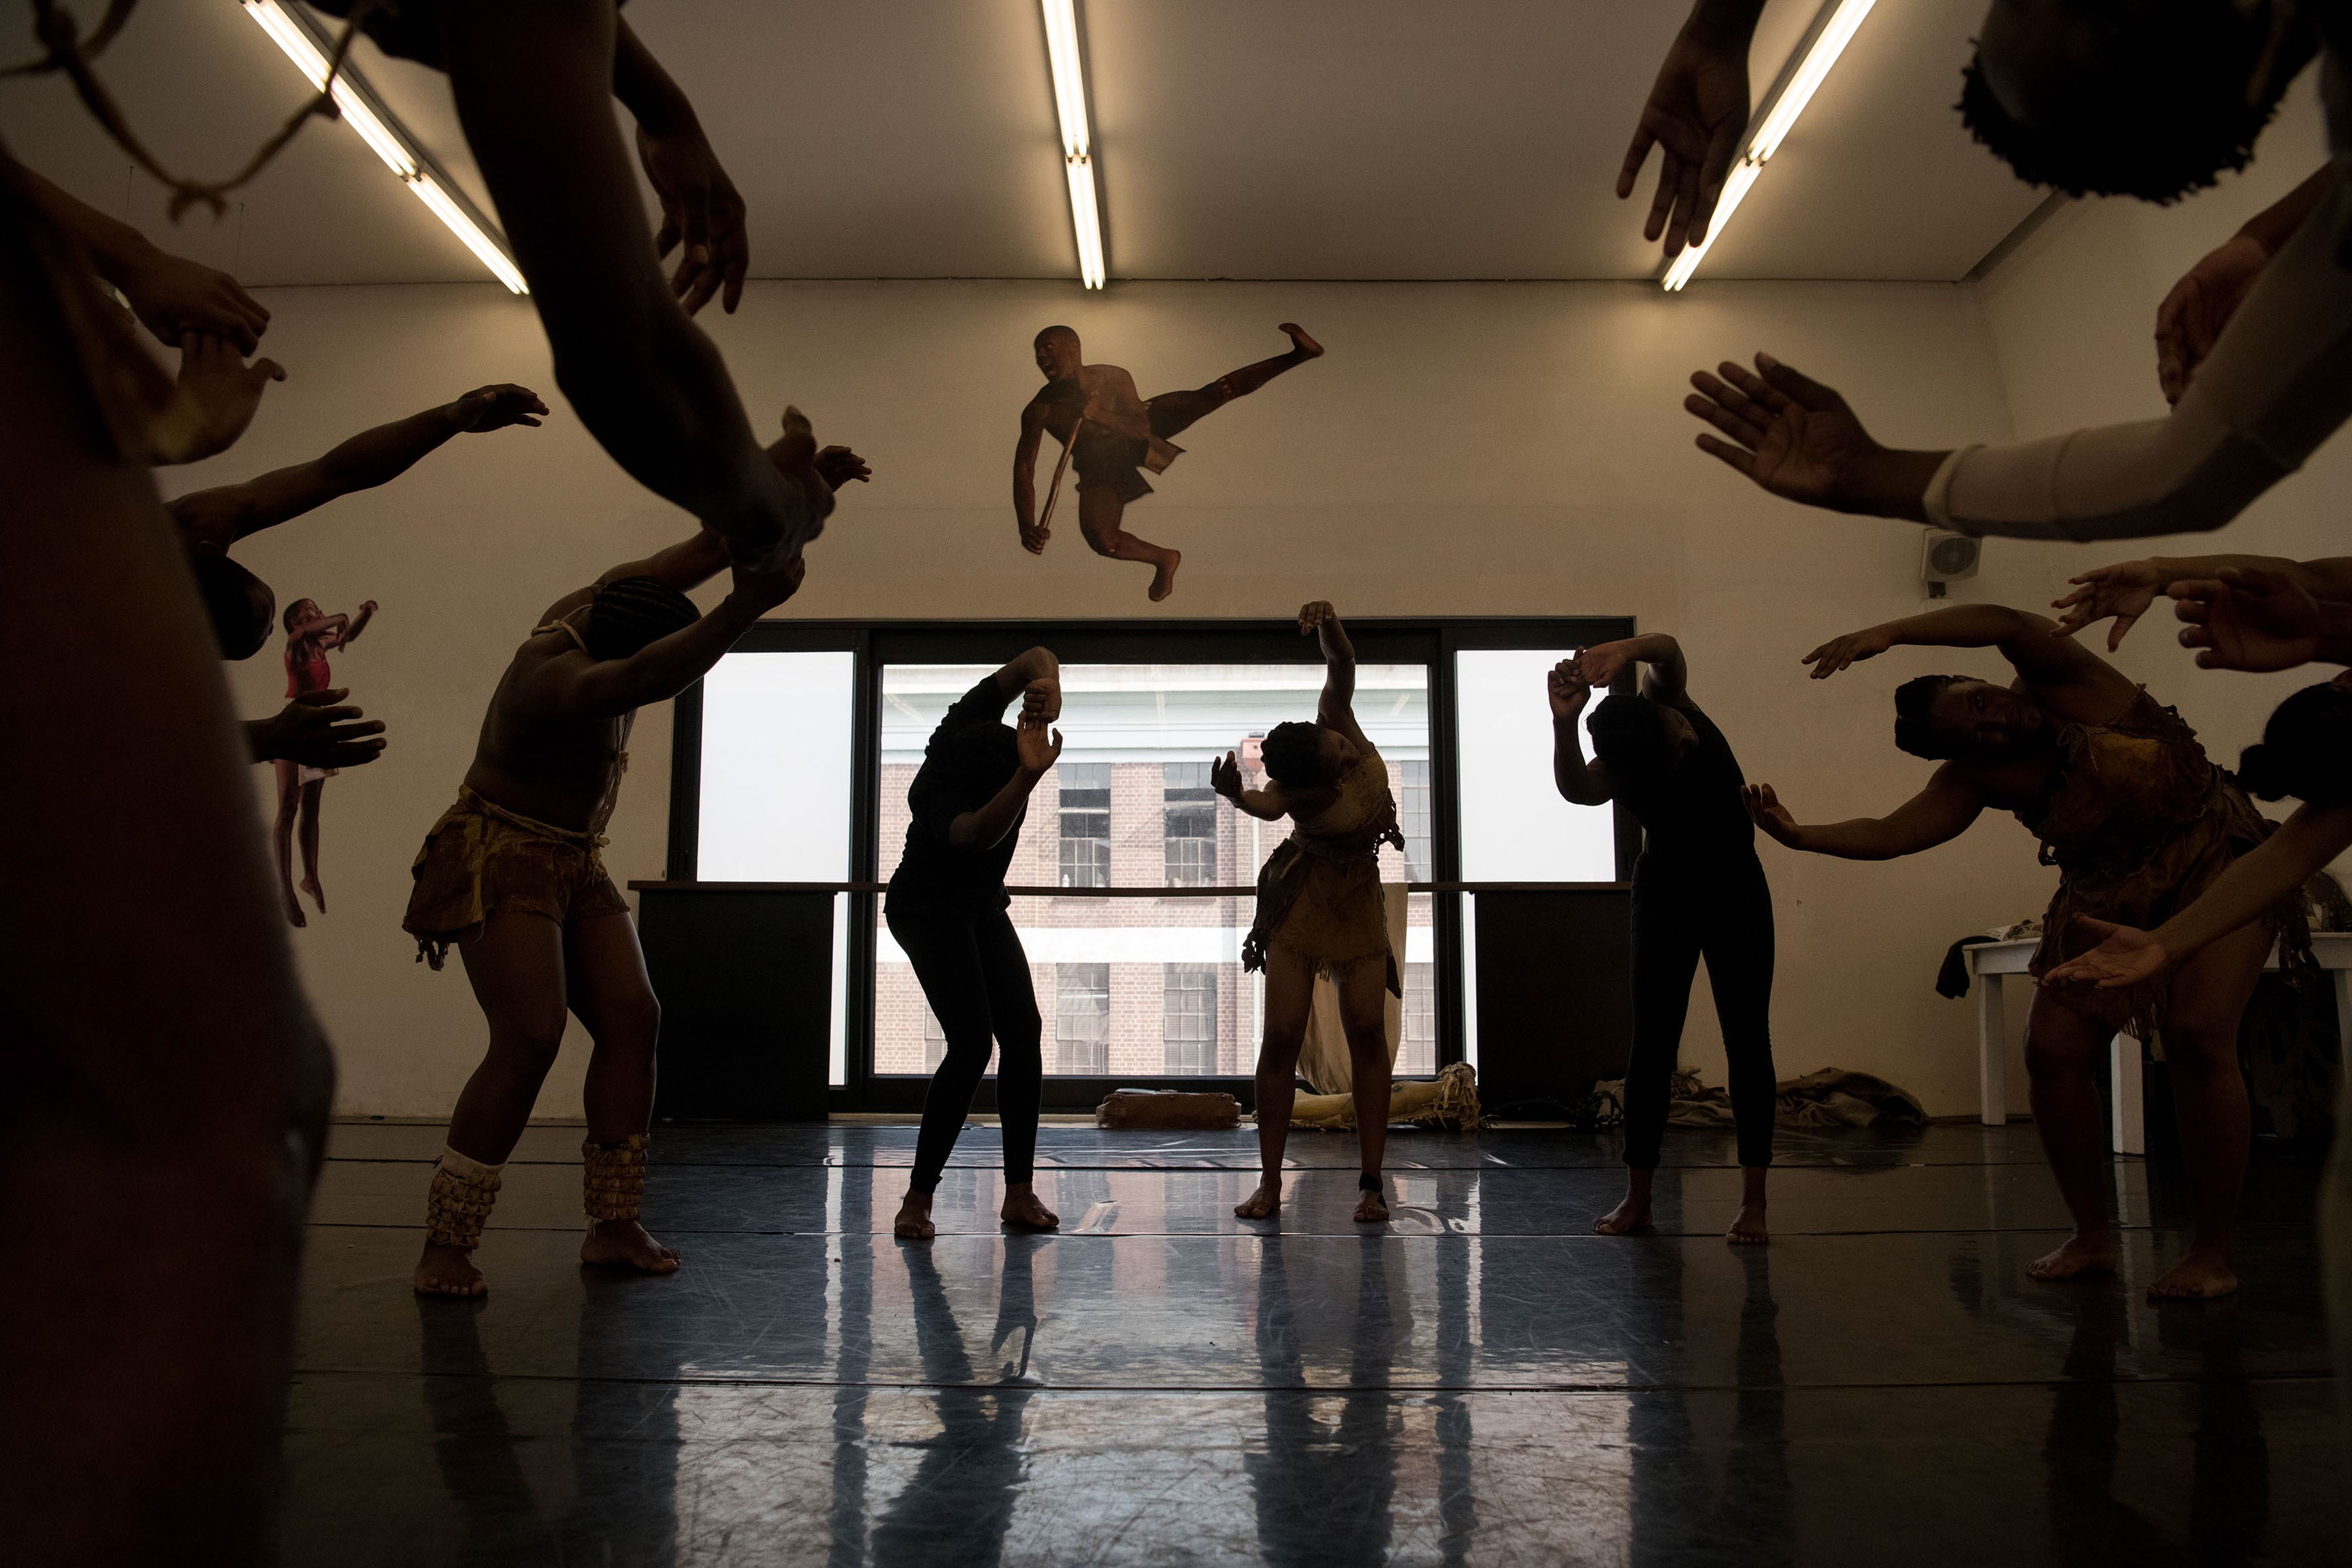 18 September 2019: In silhouette, the Moving into Dance dancers go through the routine of Sylvia Glasser's iconic work, premised on images found in San rock art.